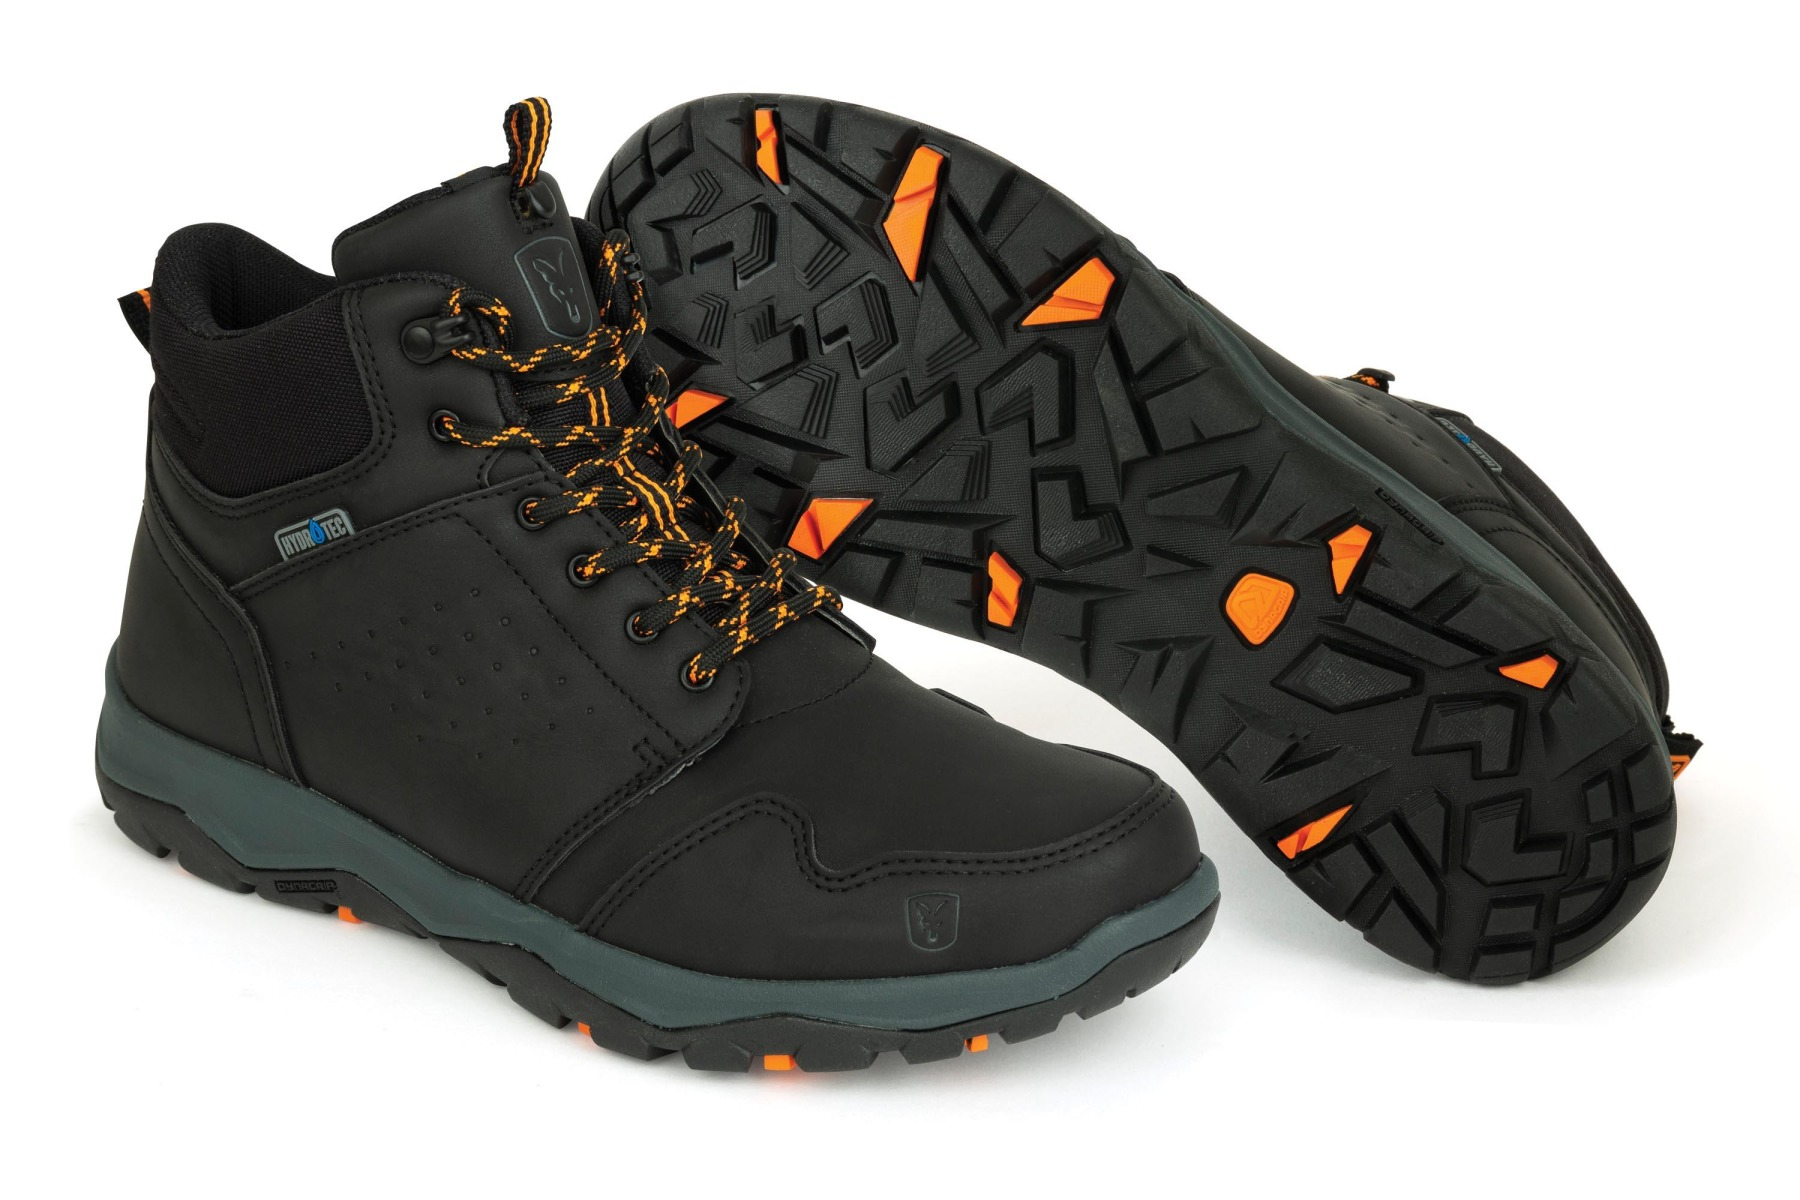 Fox Collection Black & Orange Mid Boots